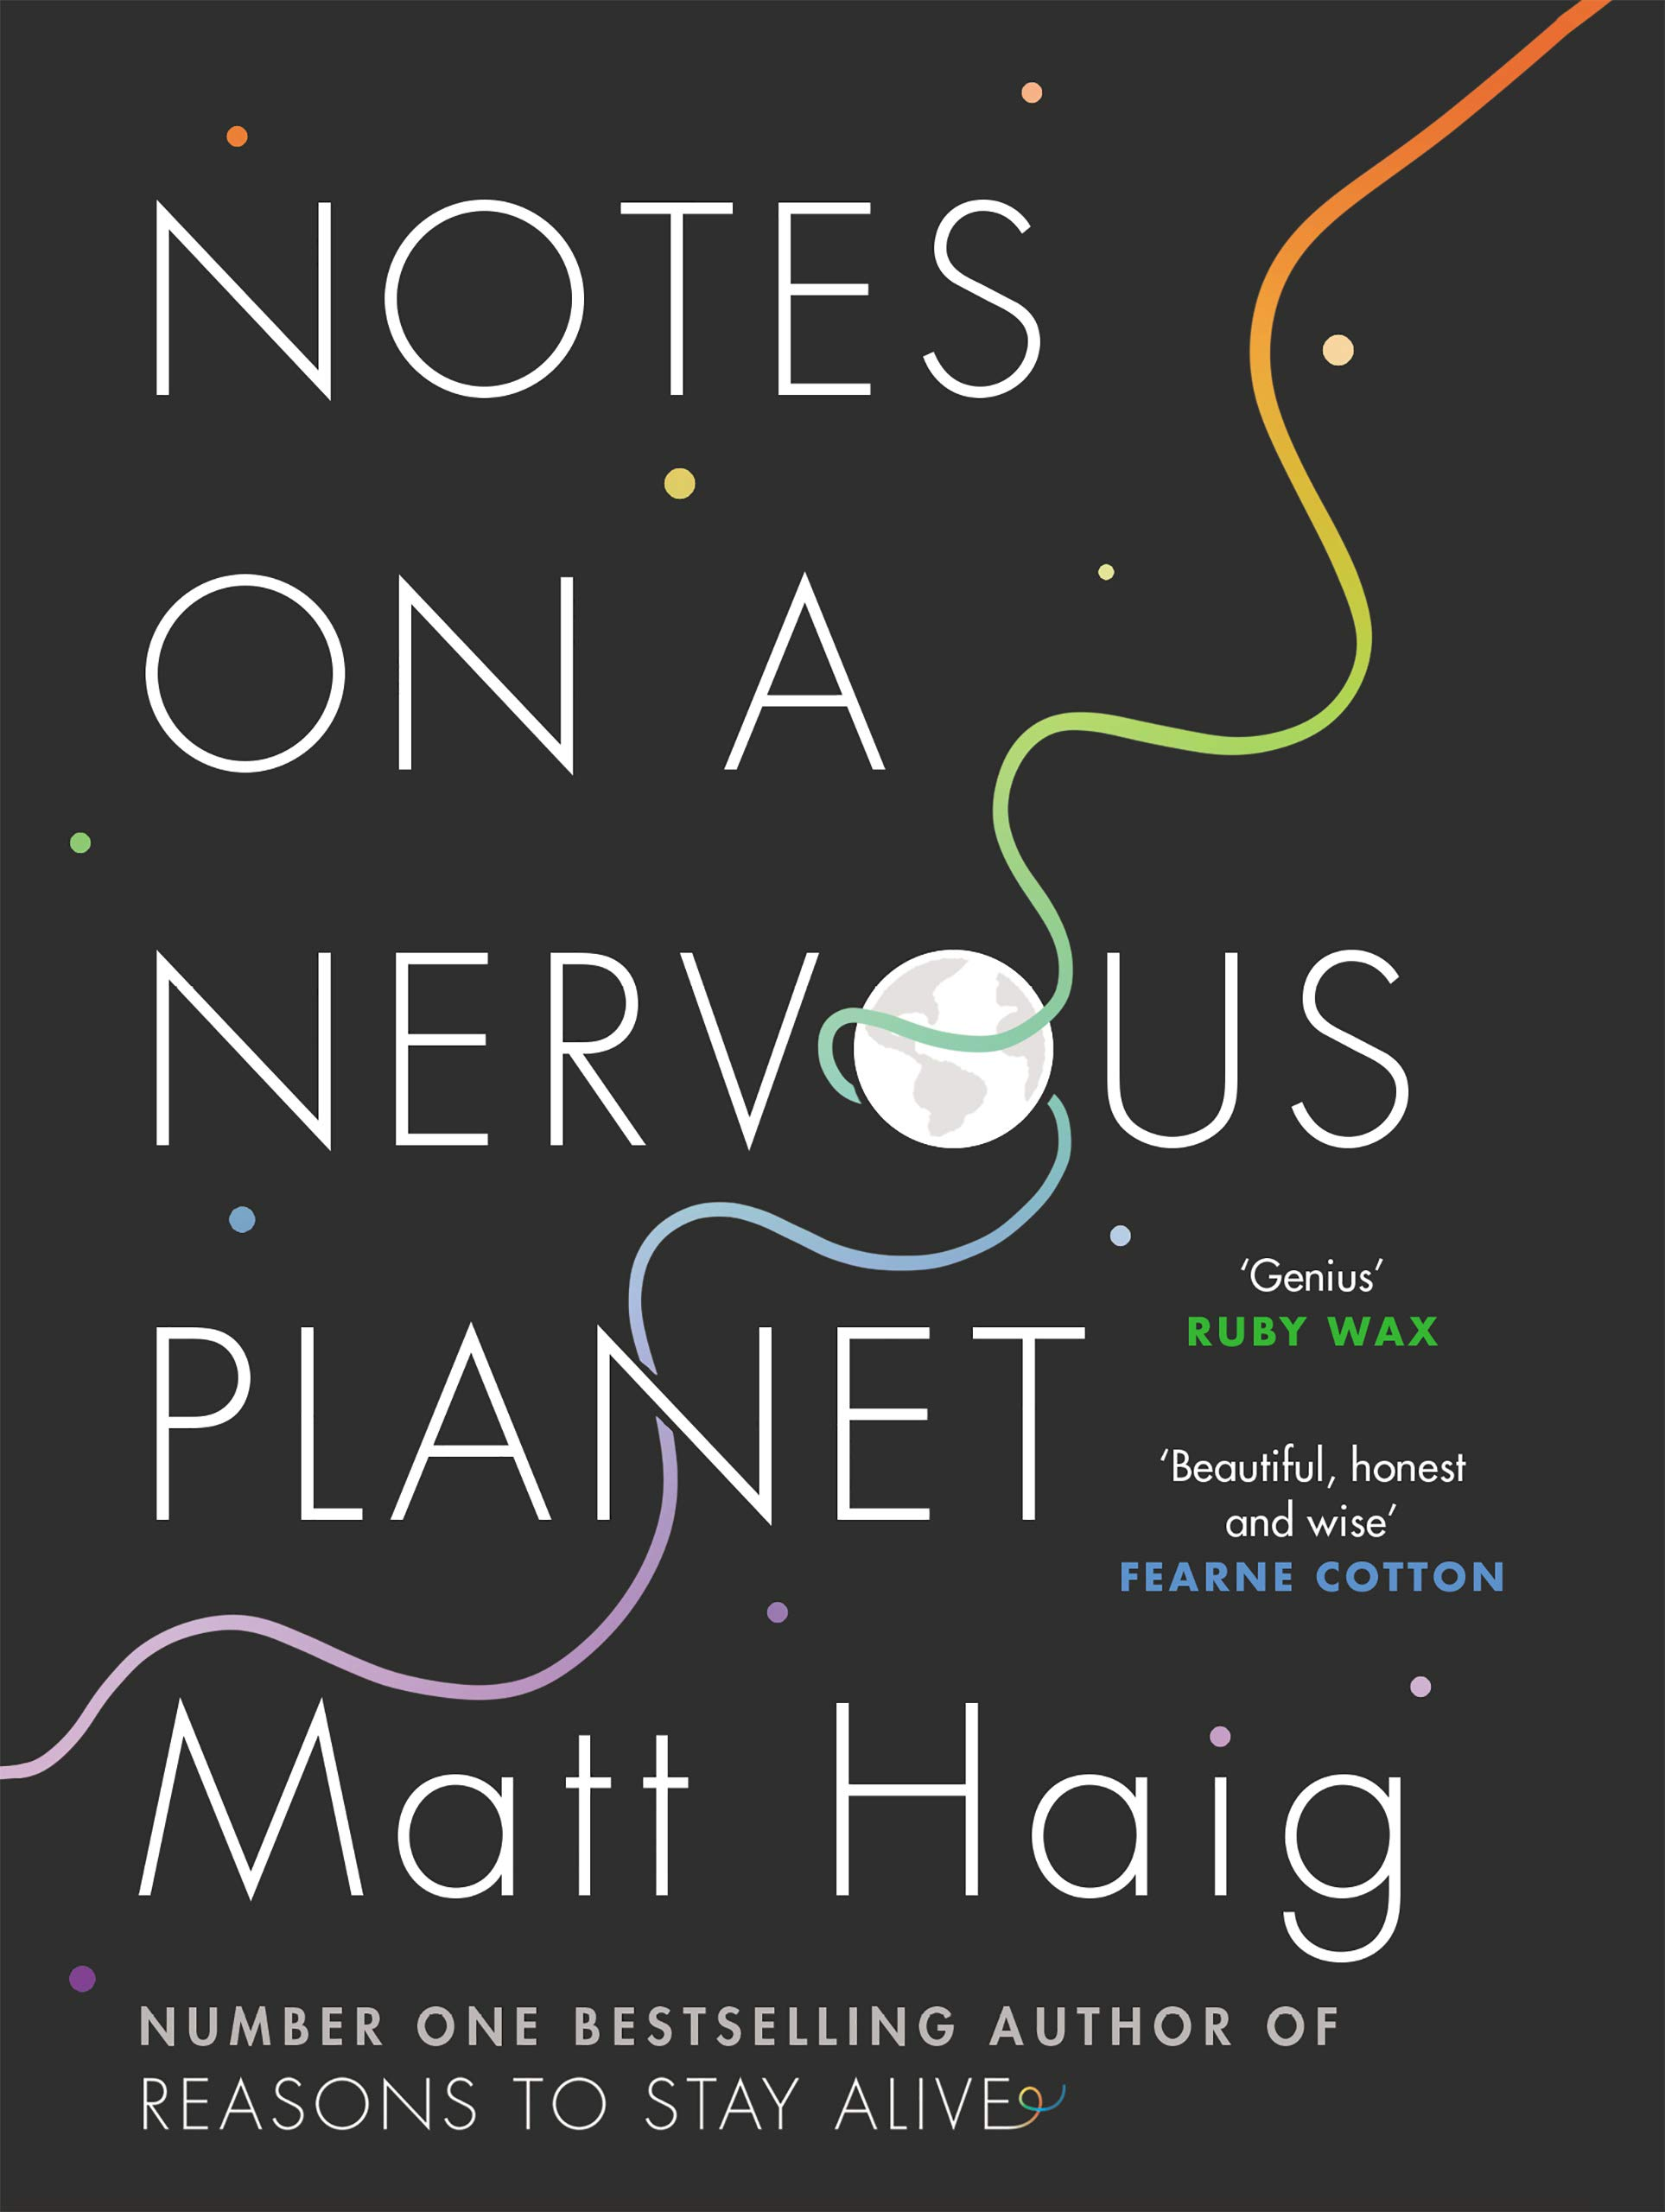 Notes on a Nervous planet book cover by Matt Haig.